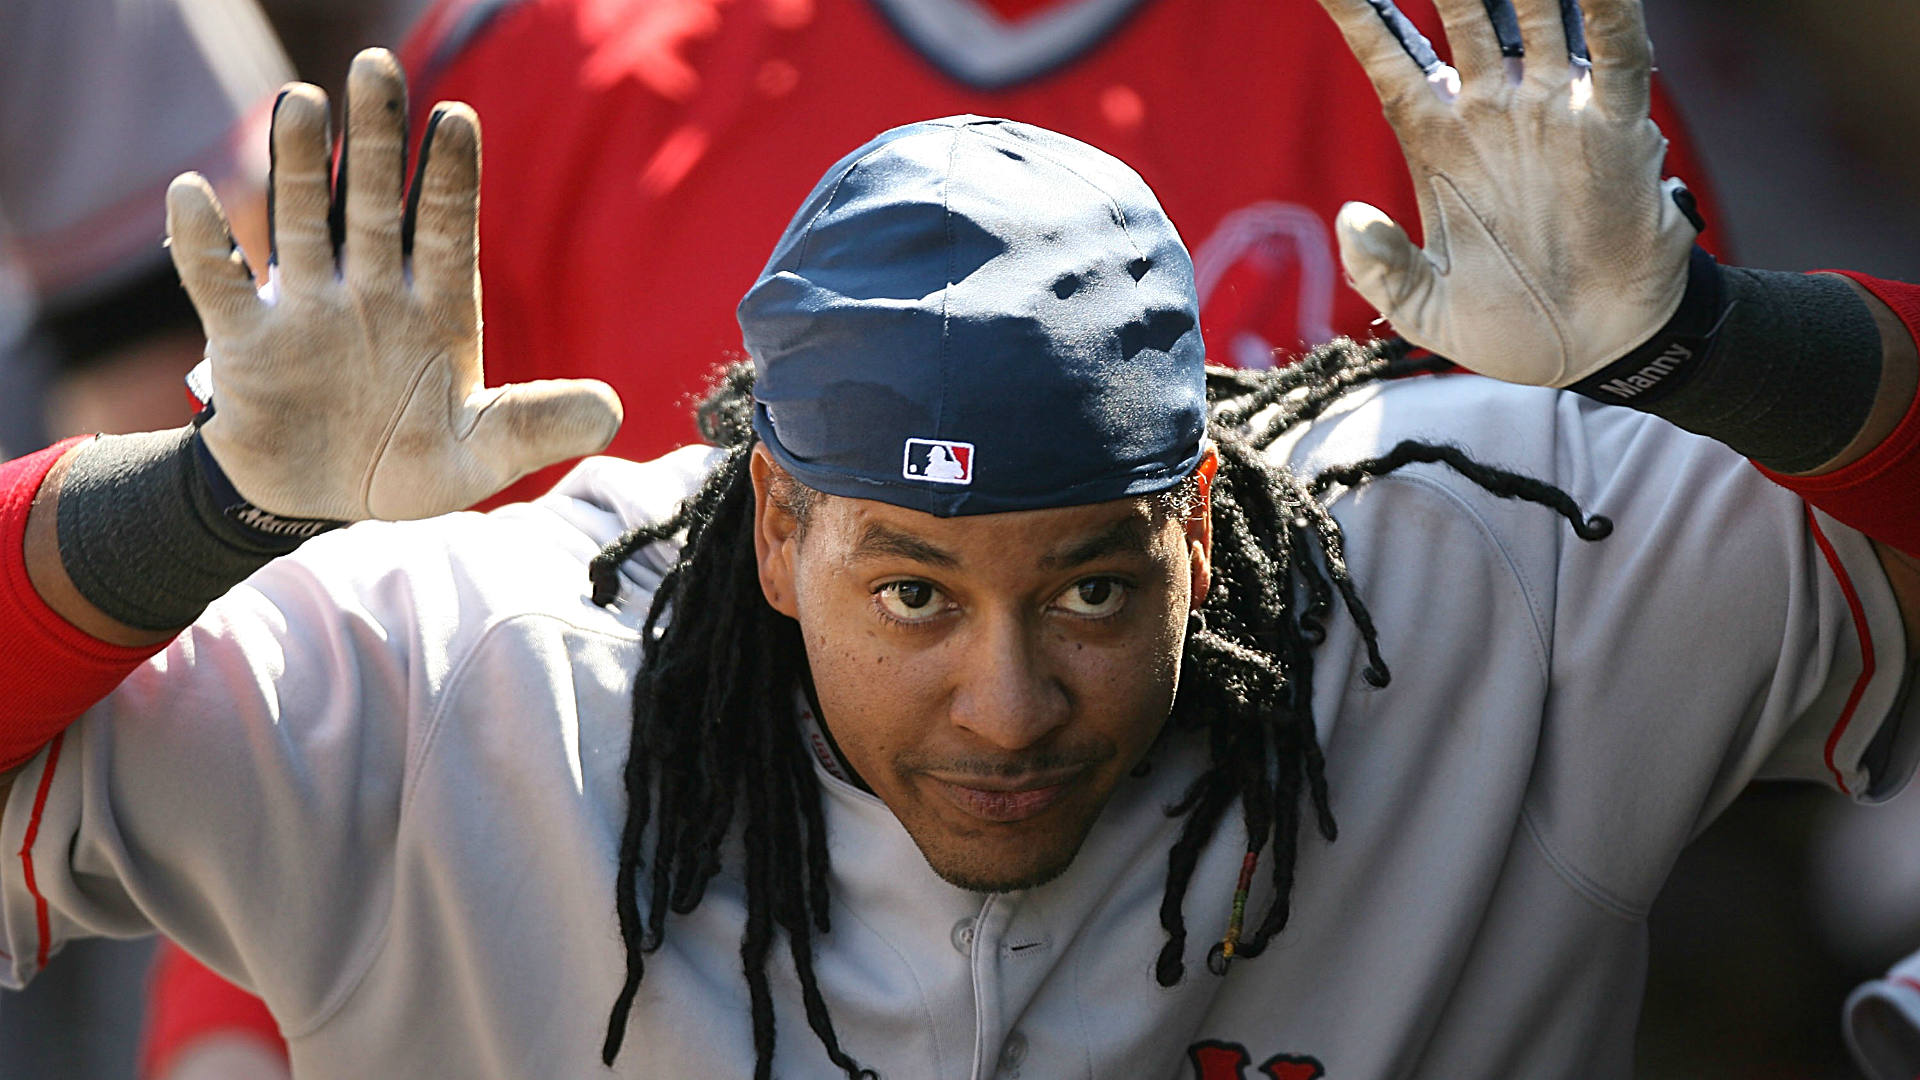 Manny Ramirez has some odd perks in his Japanese team contract